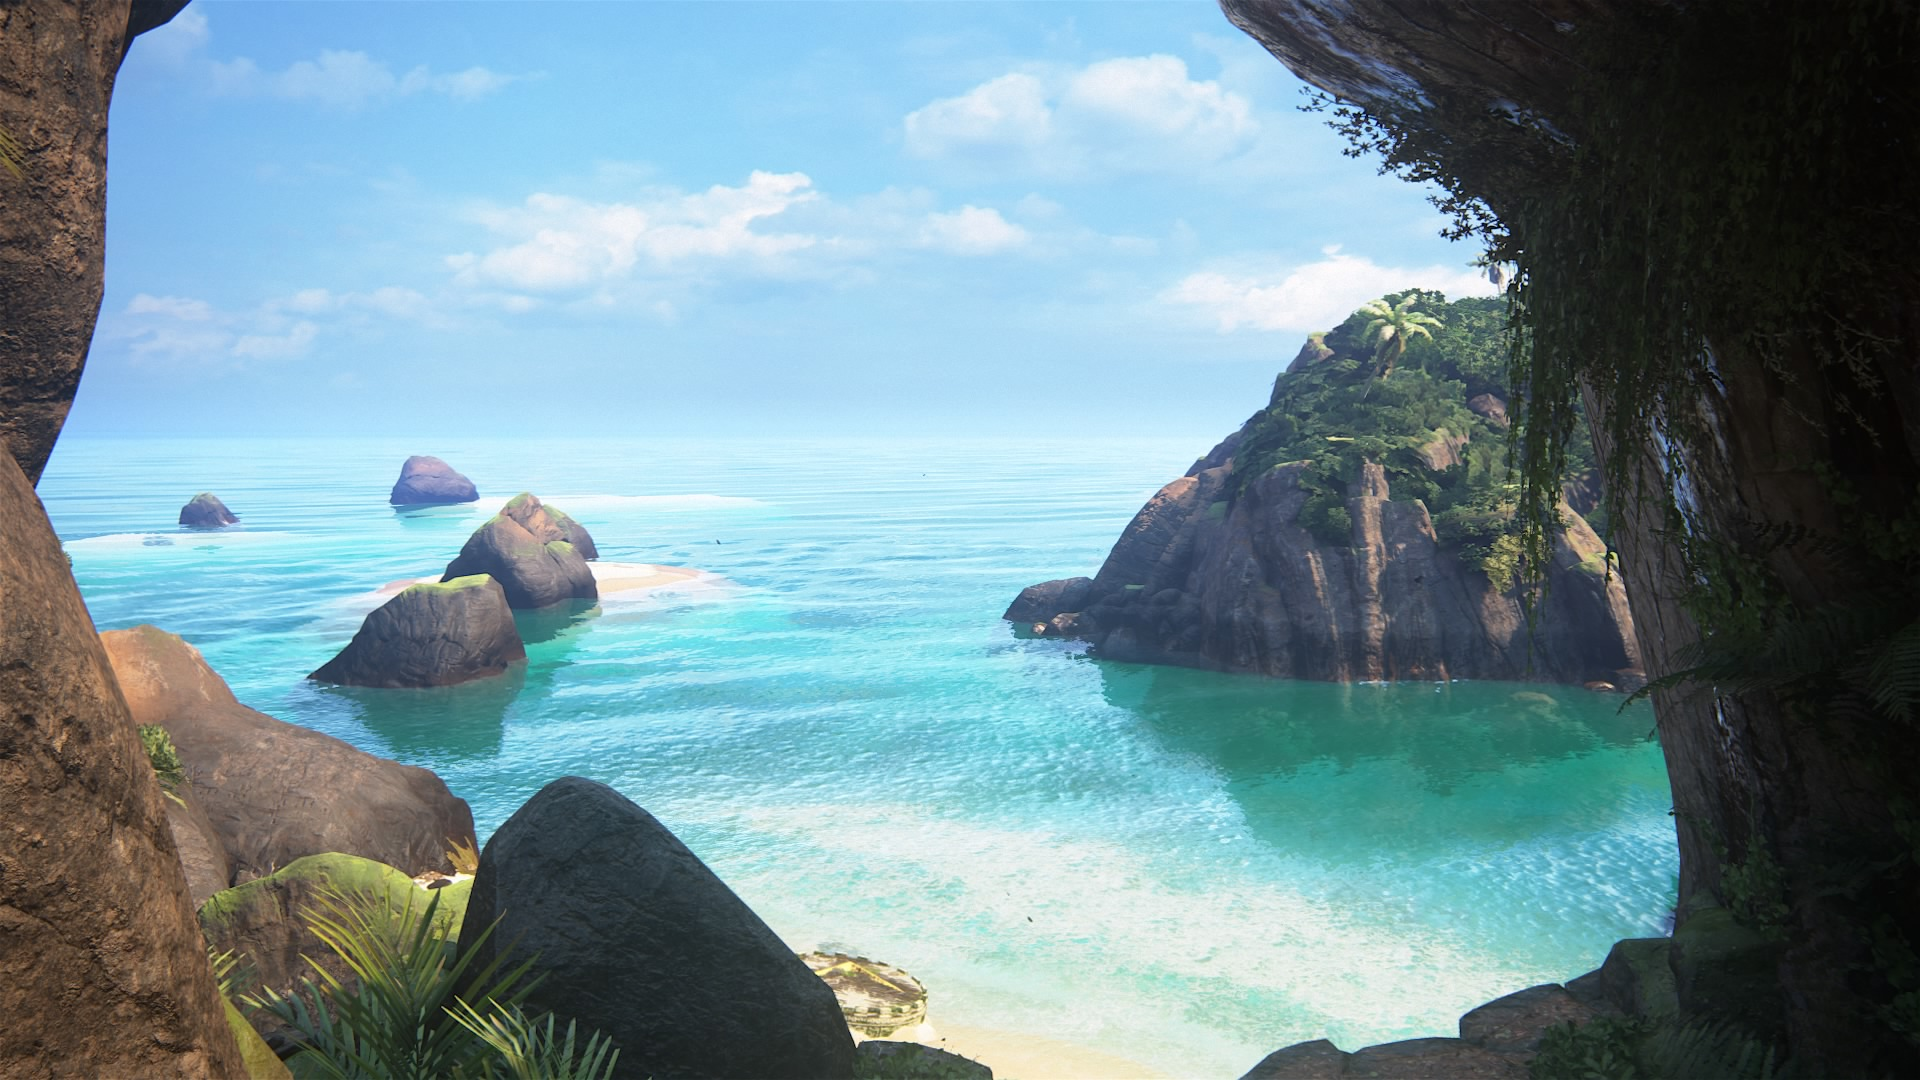 drone 2 0 video with Uncharted 4 Thiefs End Landscape Screenshots Ps4 on Ss5 2853 1 moreover Watch moreover F 1630303 Auc5010453320407 together with Fotos Memes Zuera Para Facebook Humor likewise Lago Di Tenno.